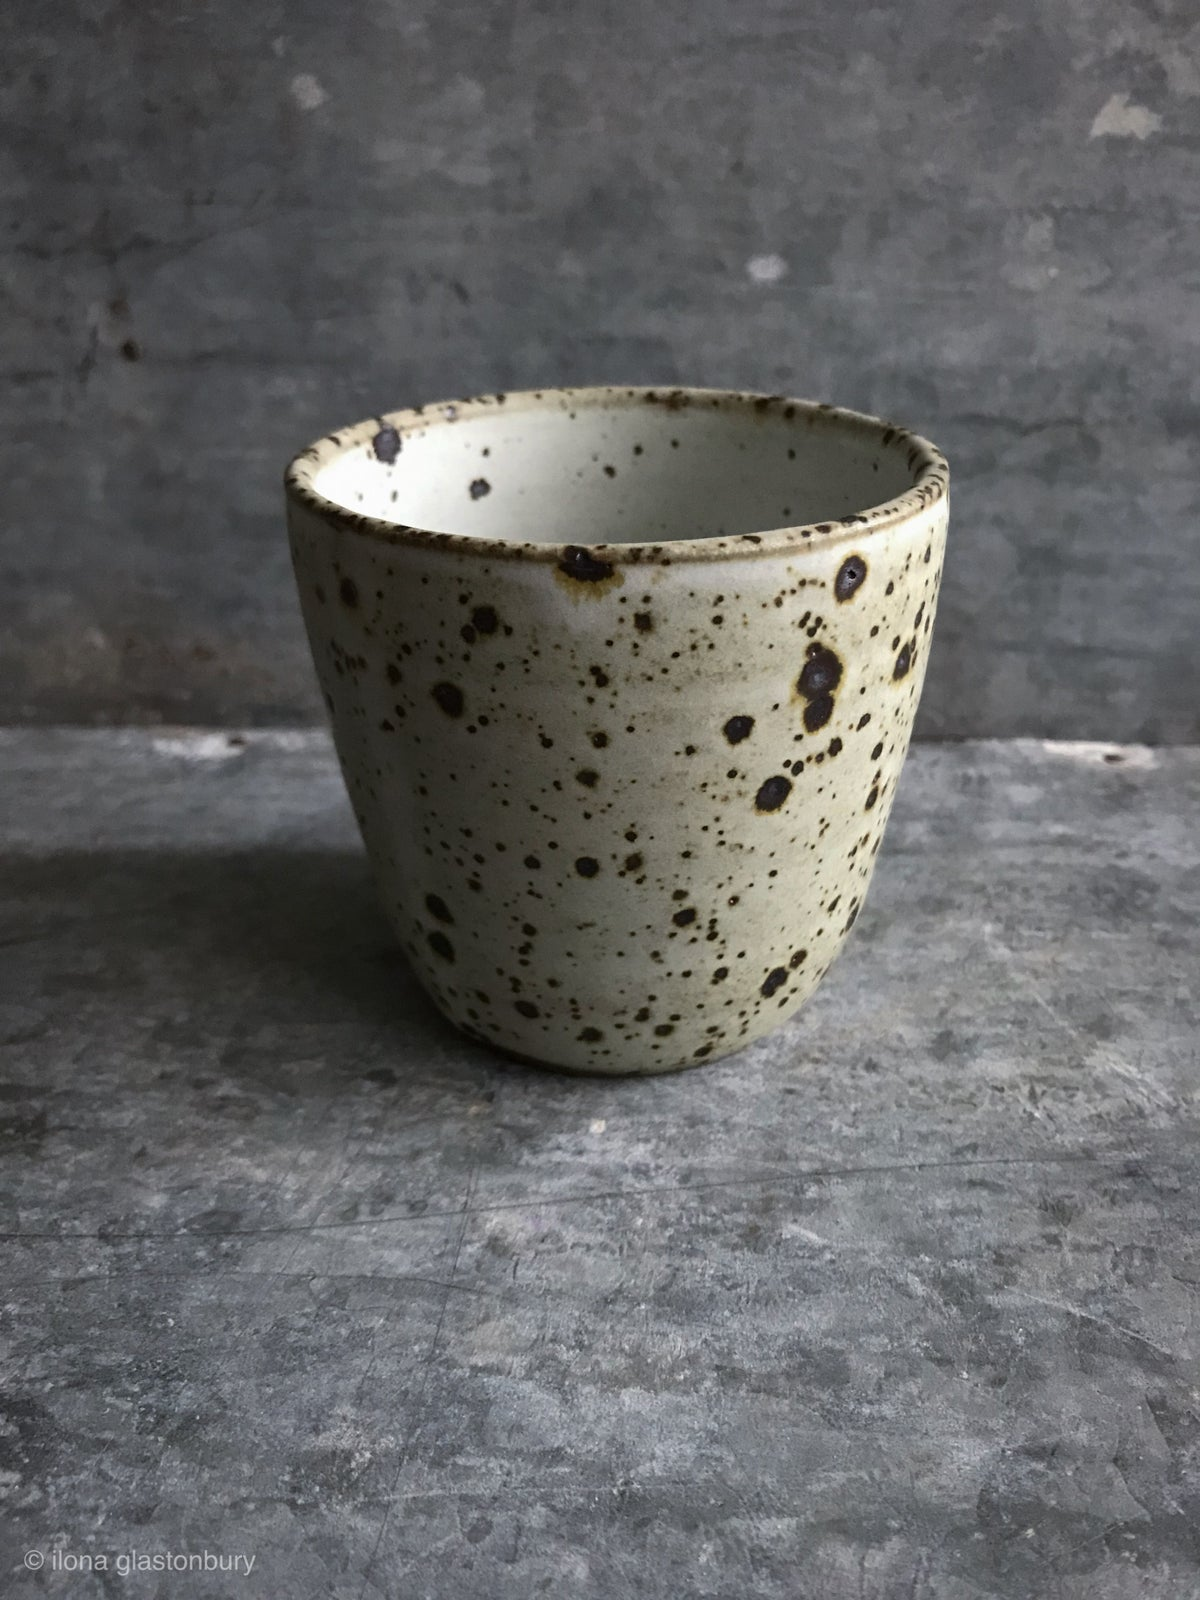 Image of Wabi sabi latte cups